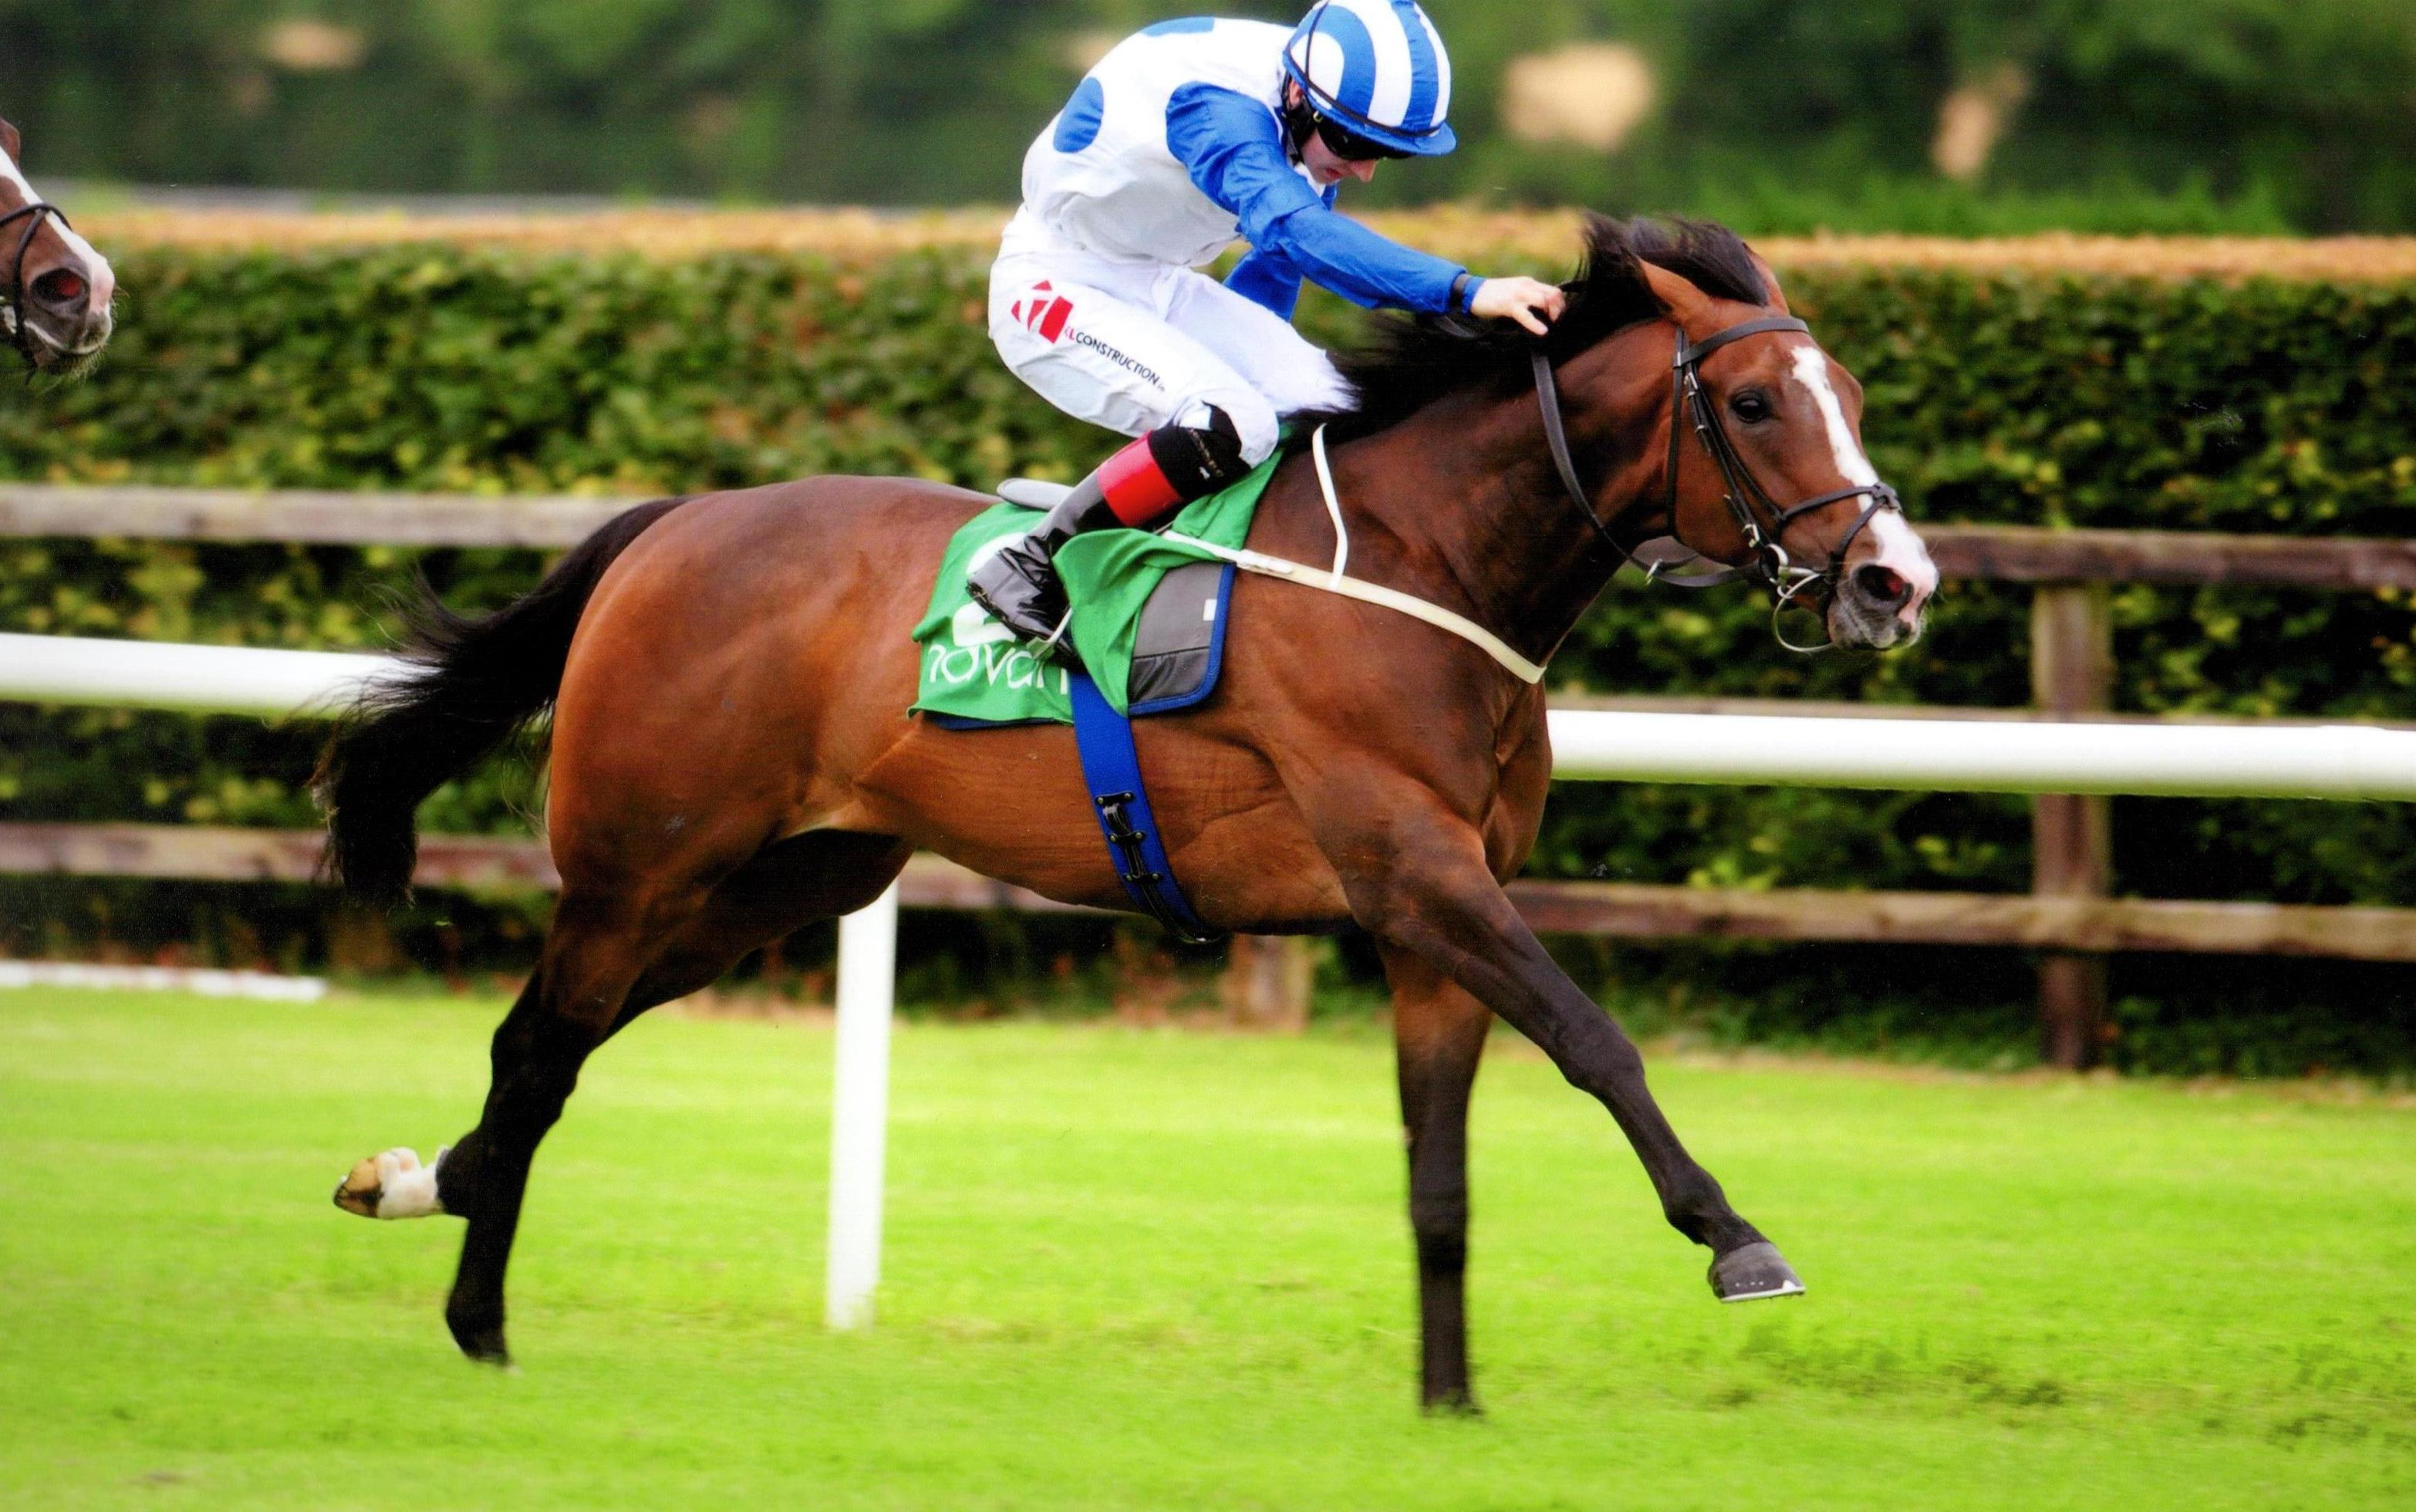 BUFFALO BLUES ridden to victory by Colin Keane at Navan 14th July 2017